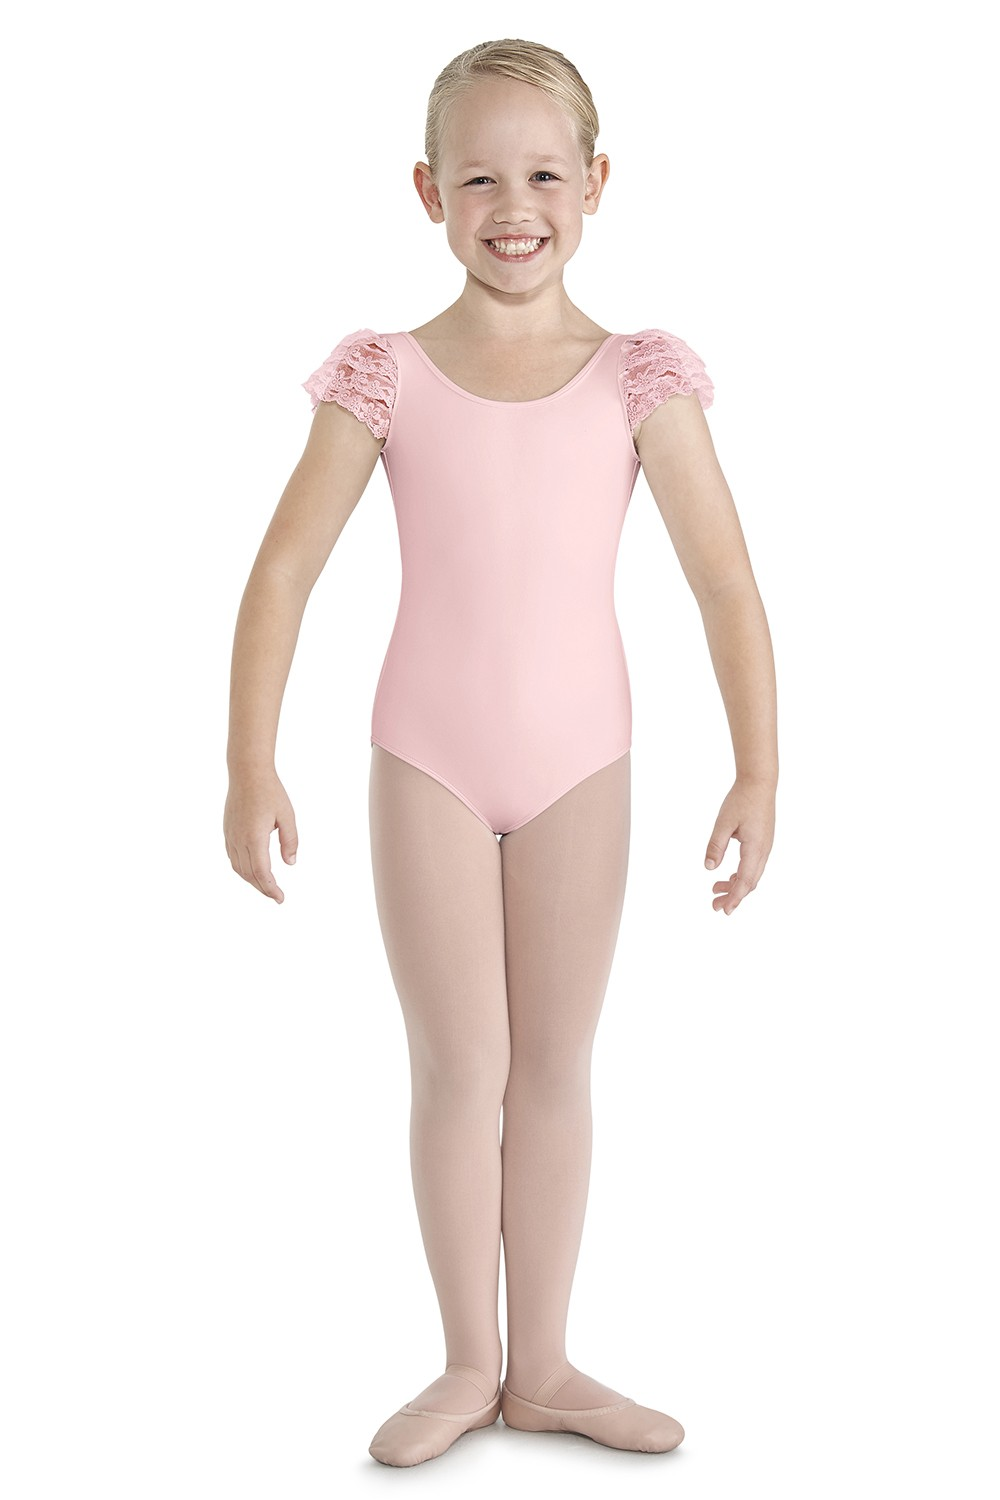 Trishala Children's Dance Leotards